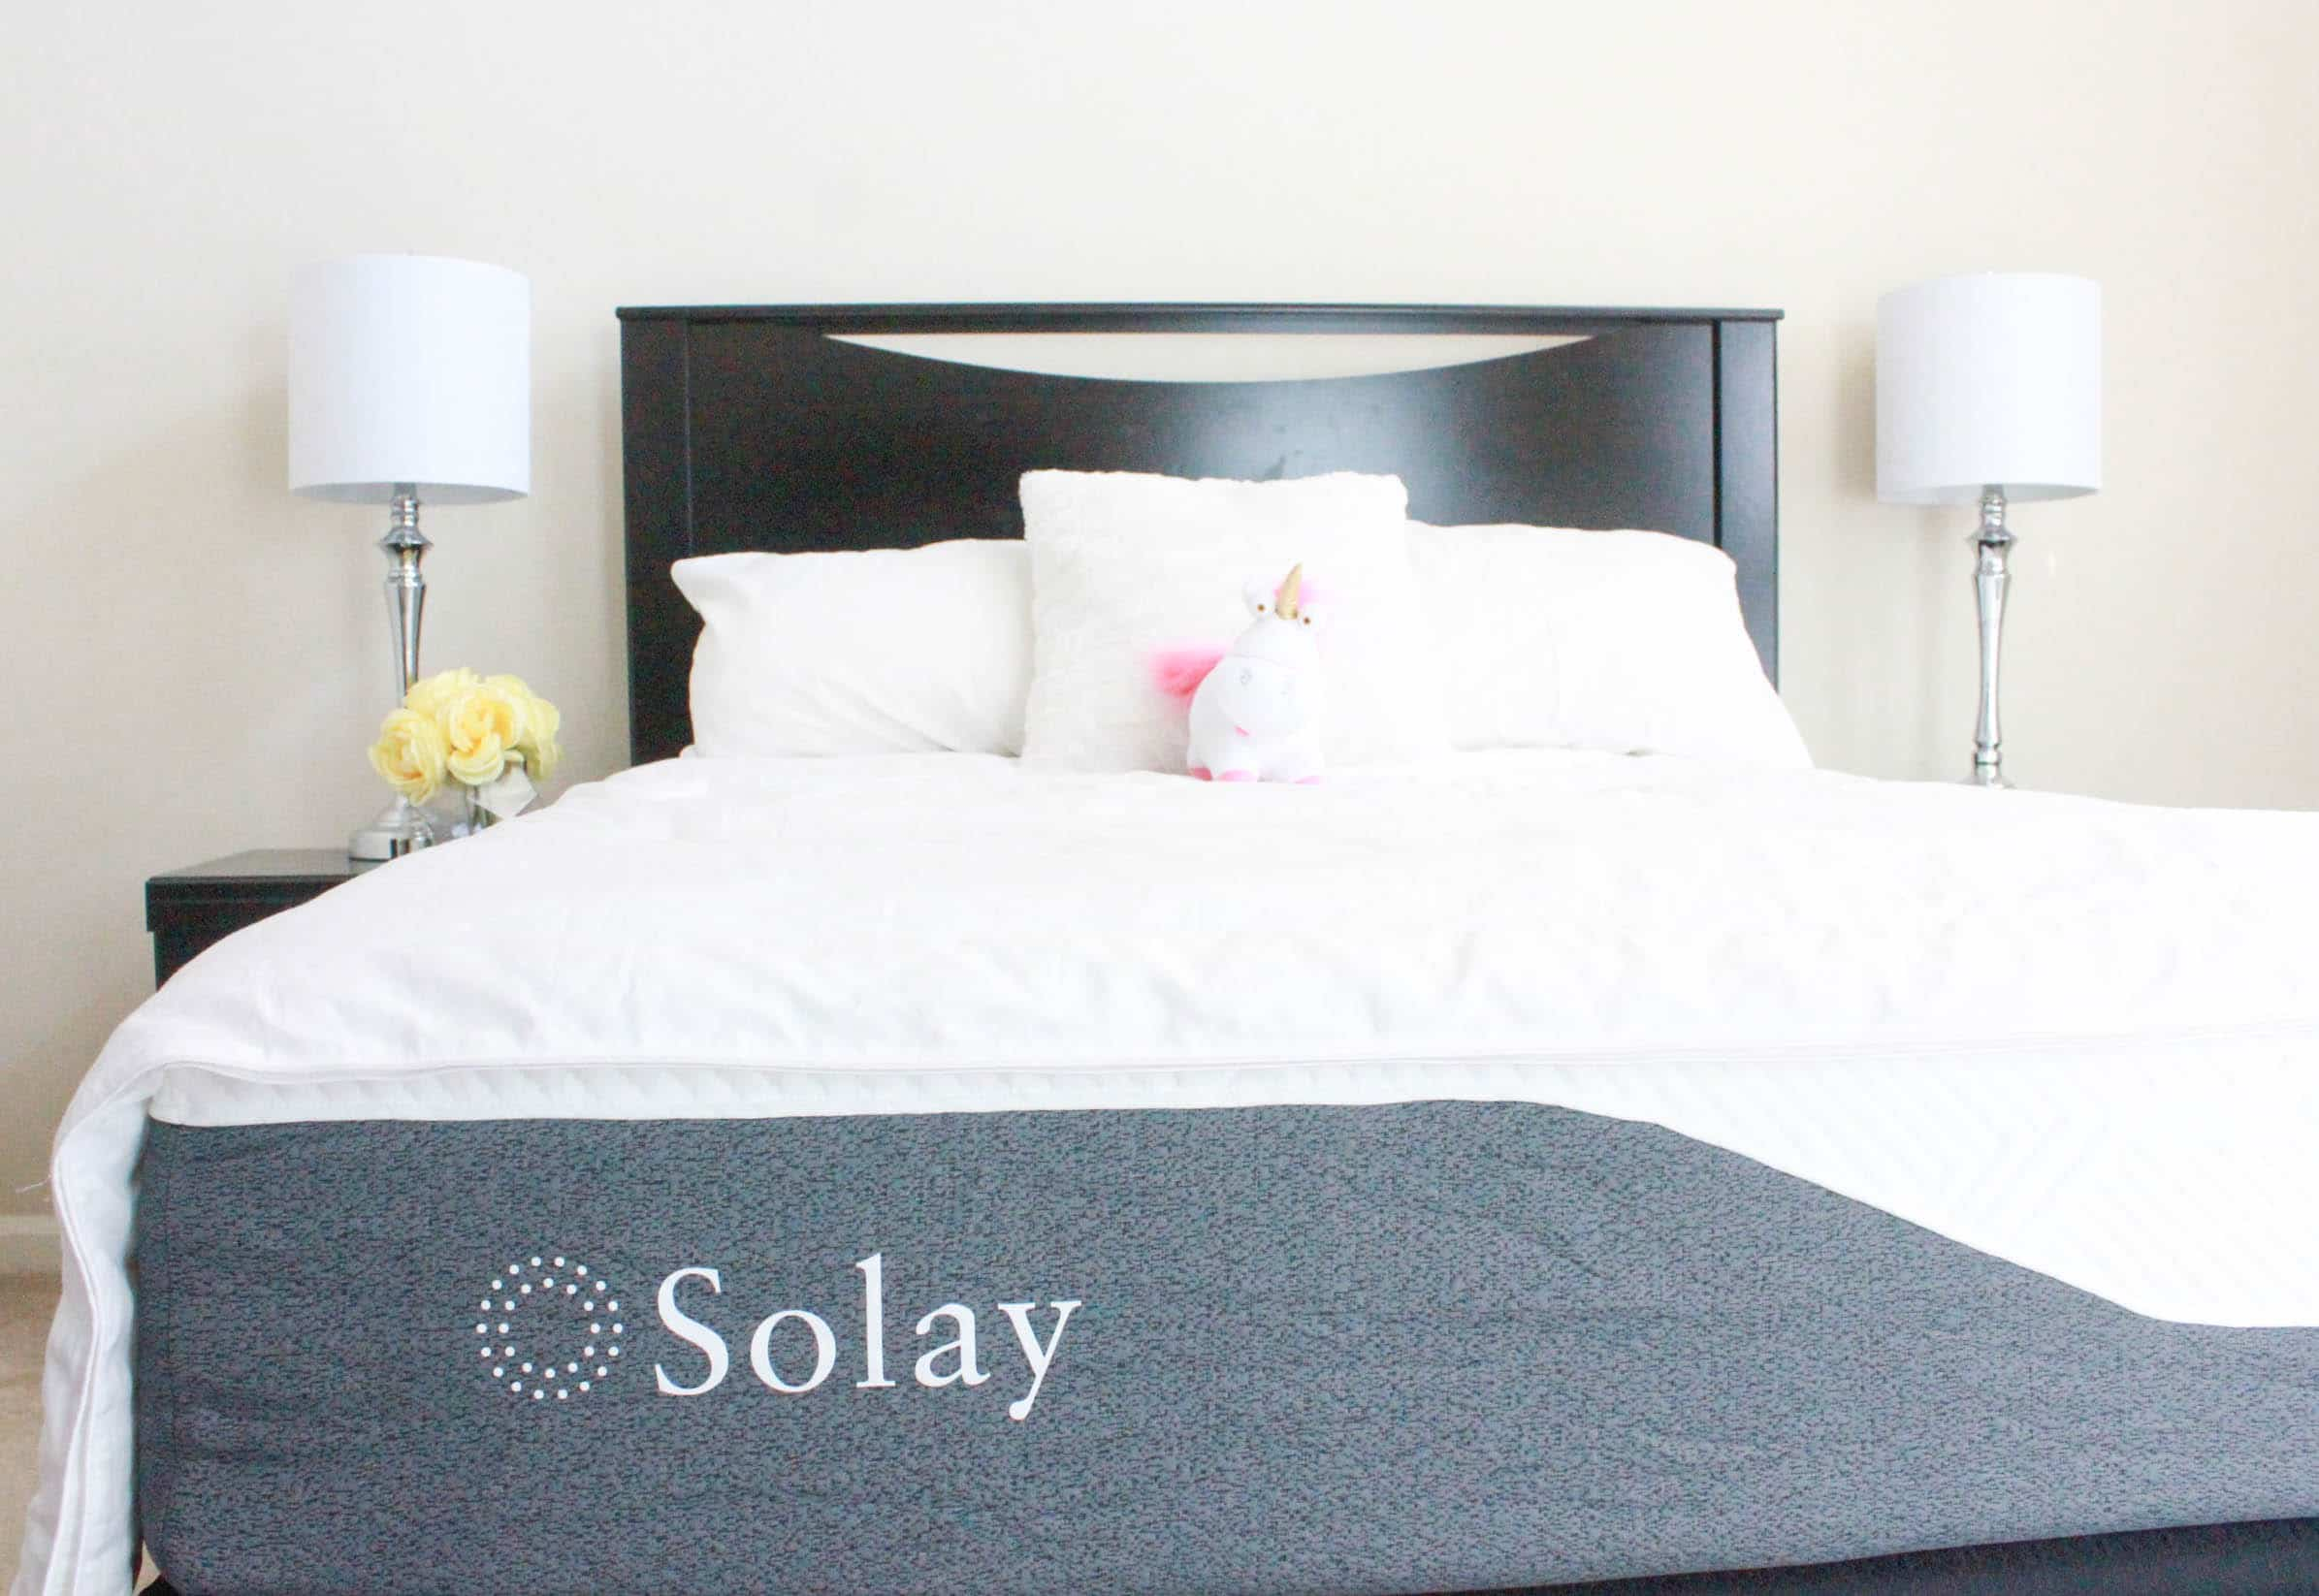 missyonmadison, missyonmadion blog, missyonmadison instagram, solay sleep, solay sleep review, solay sleep mattress, mattress review, casper mattress, memory foam mattress, mattress reviews, la blogger, lifestyle blogger, home decor goals, bedroom decor, home decor, bedding review,